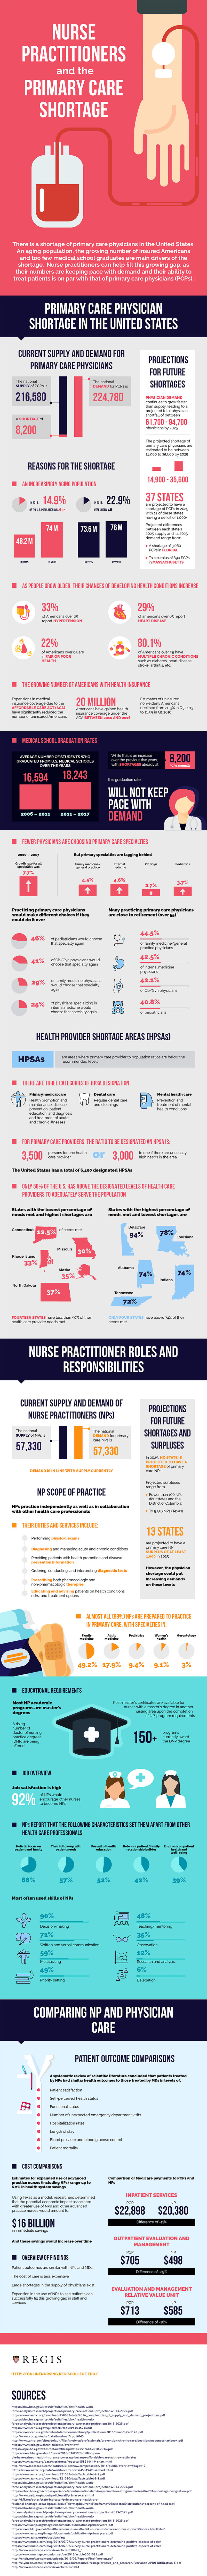 Nurse Practitioners And The Primary Care Shortage - Infographic | eMedCert